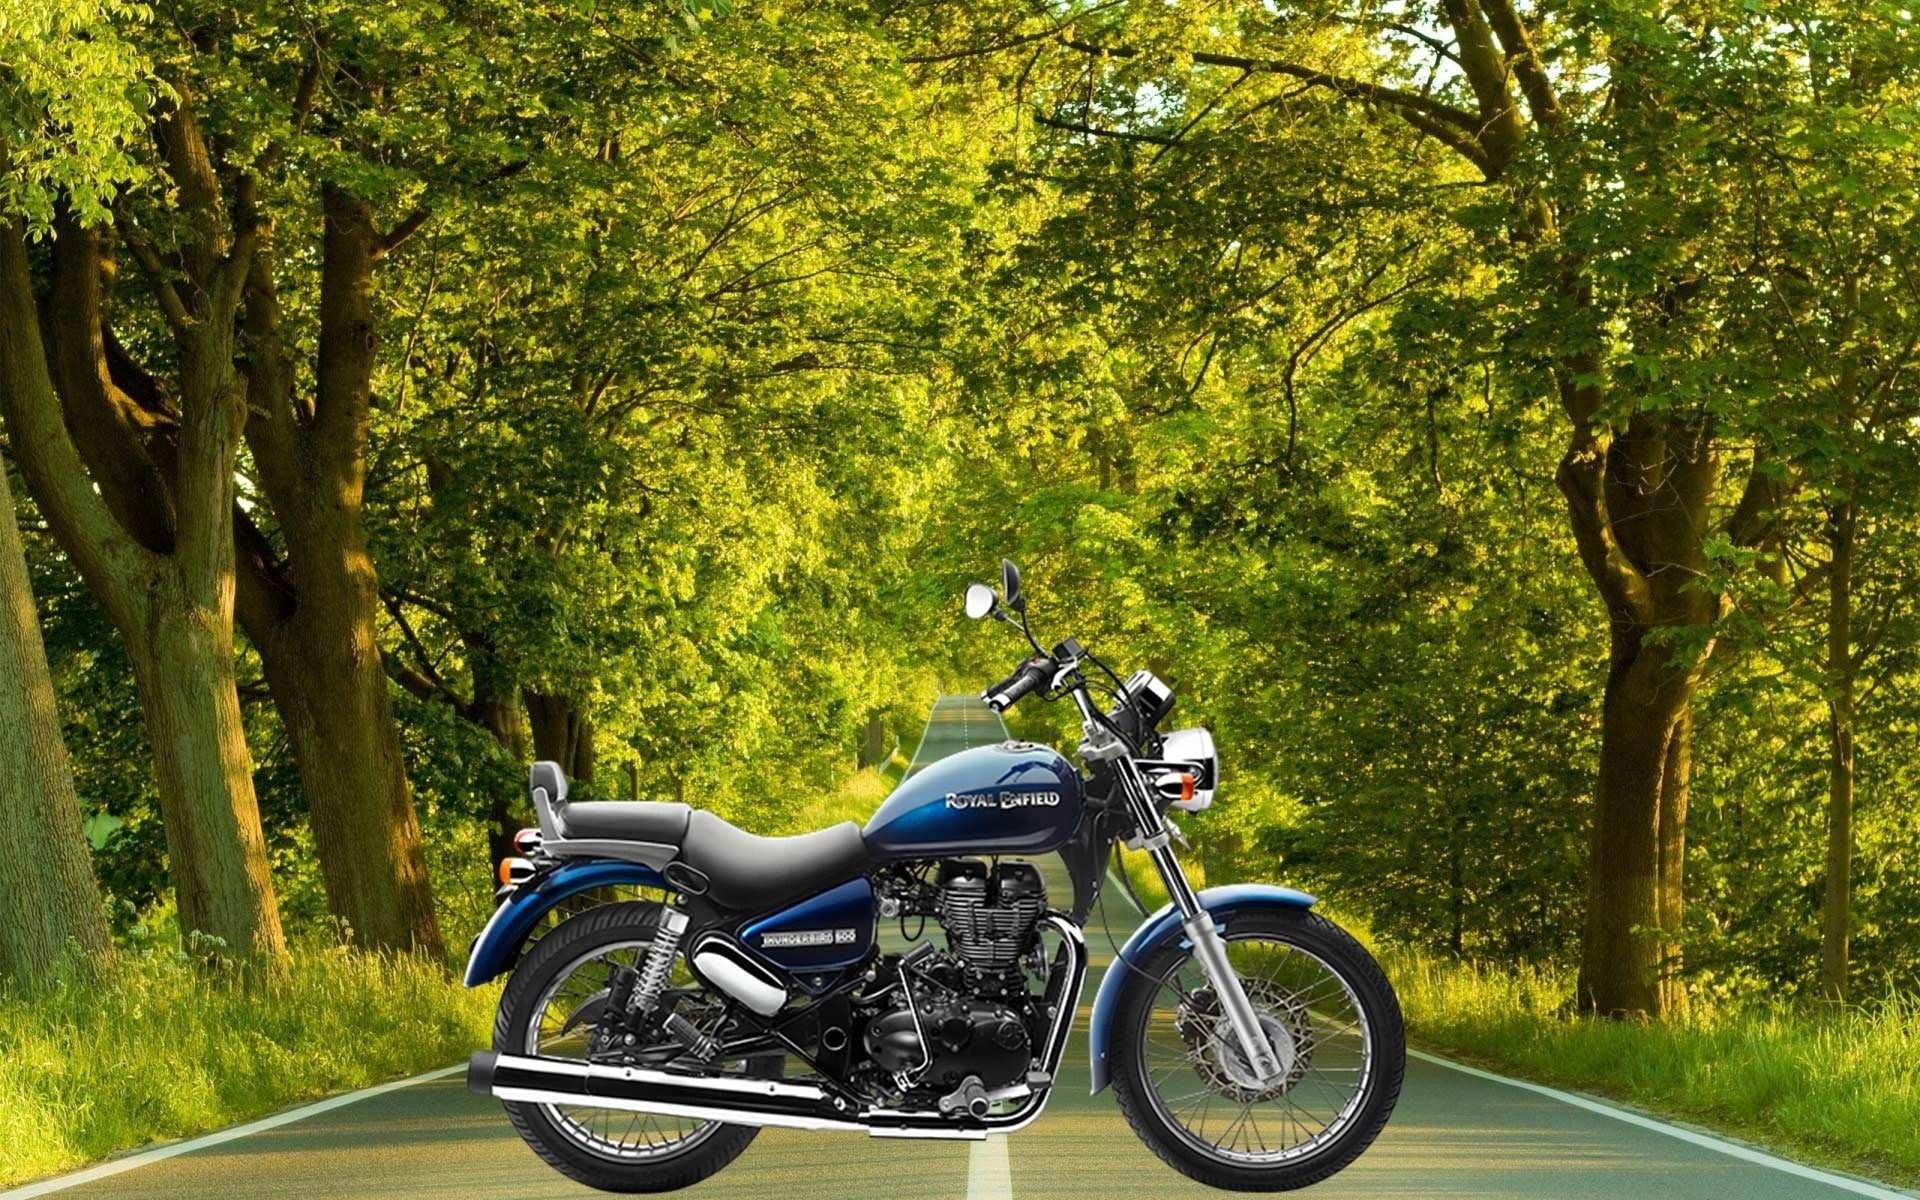 Royal Enfield Classic 350 Wallpapers 1366x768 40 Image Collections Of Wallpapers Royal Enfield Wallpapers Enfield Classic Royal Enfield